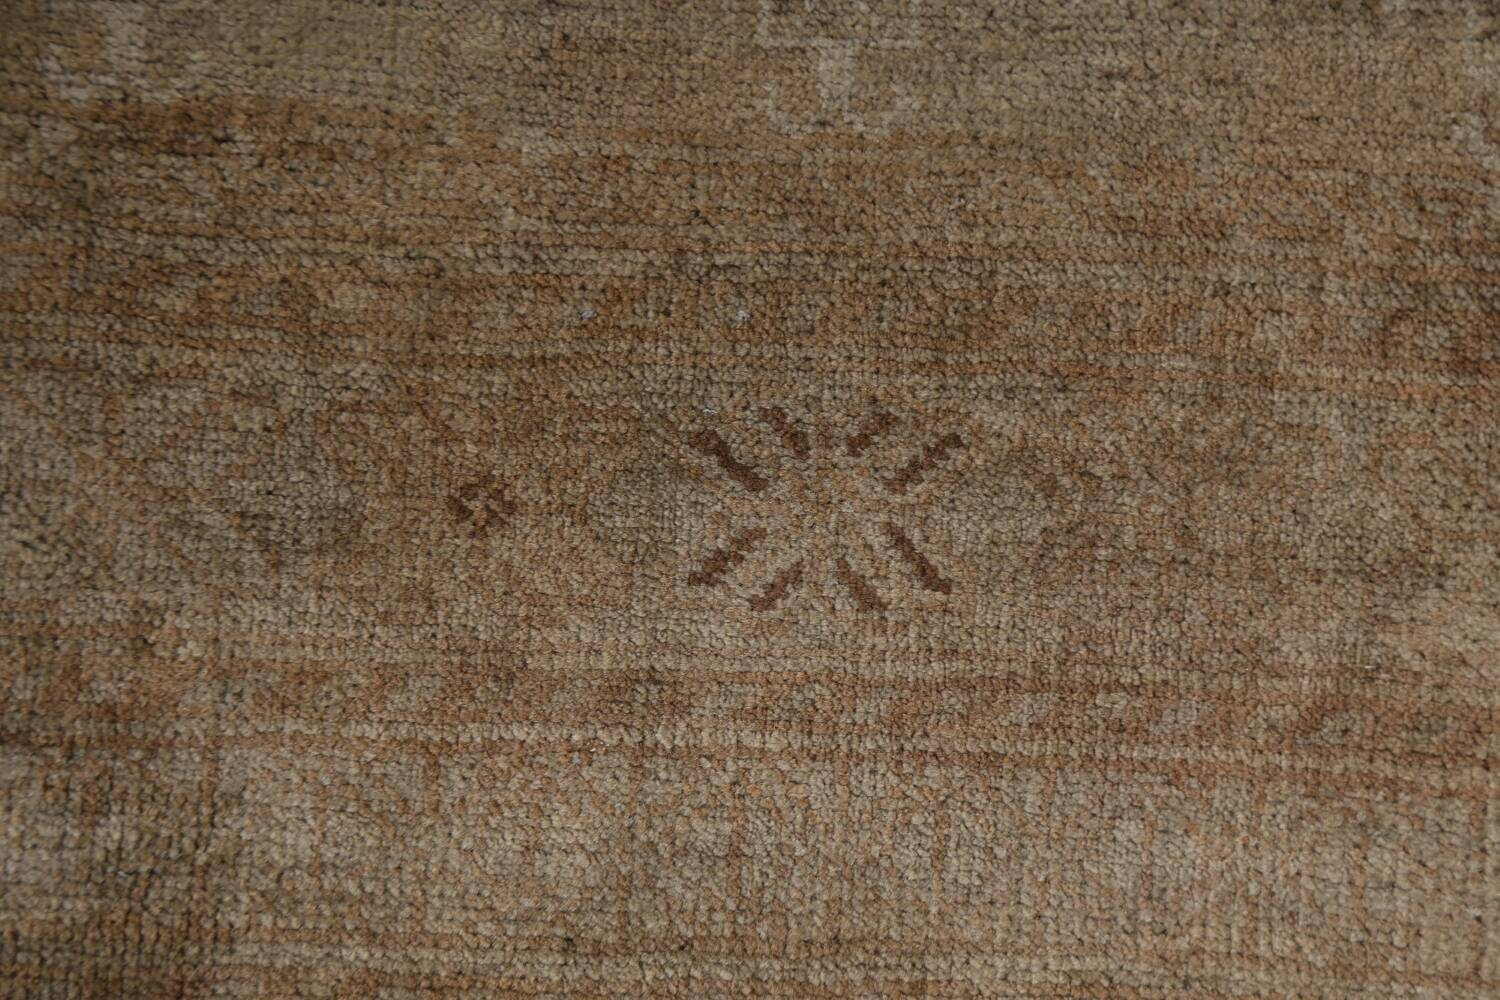 Antique Distressed Balouch Persian Wool Rug 4x8 image 9